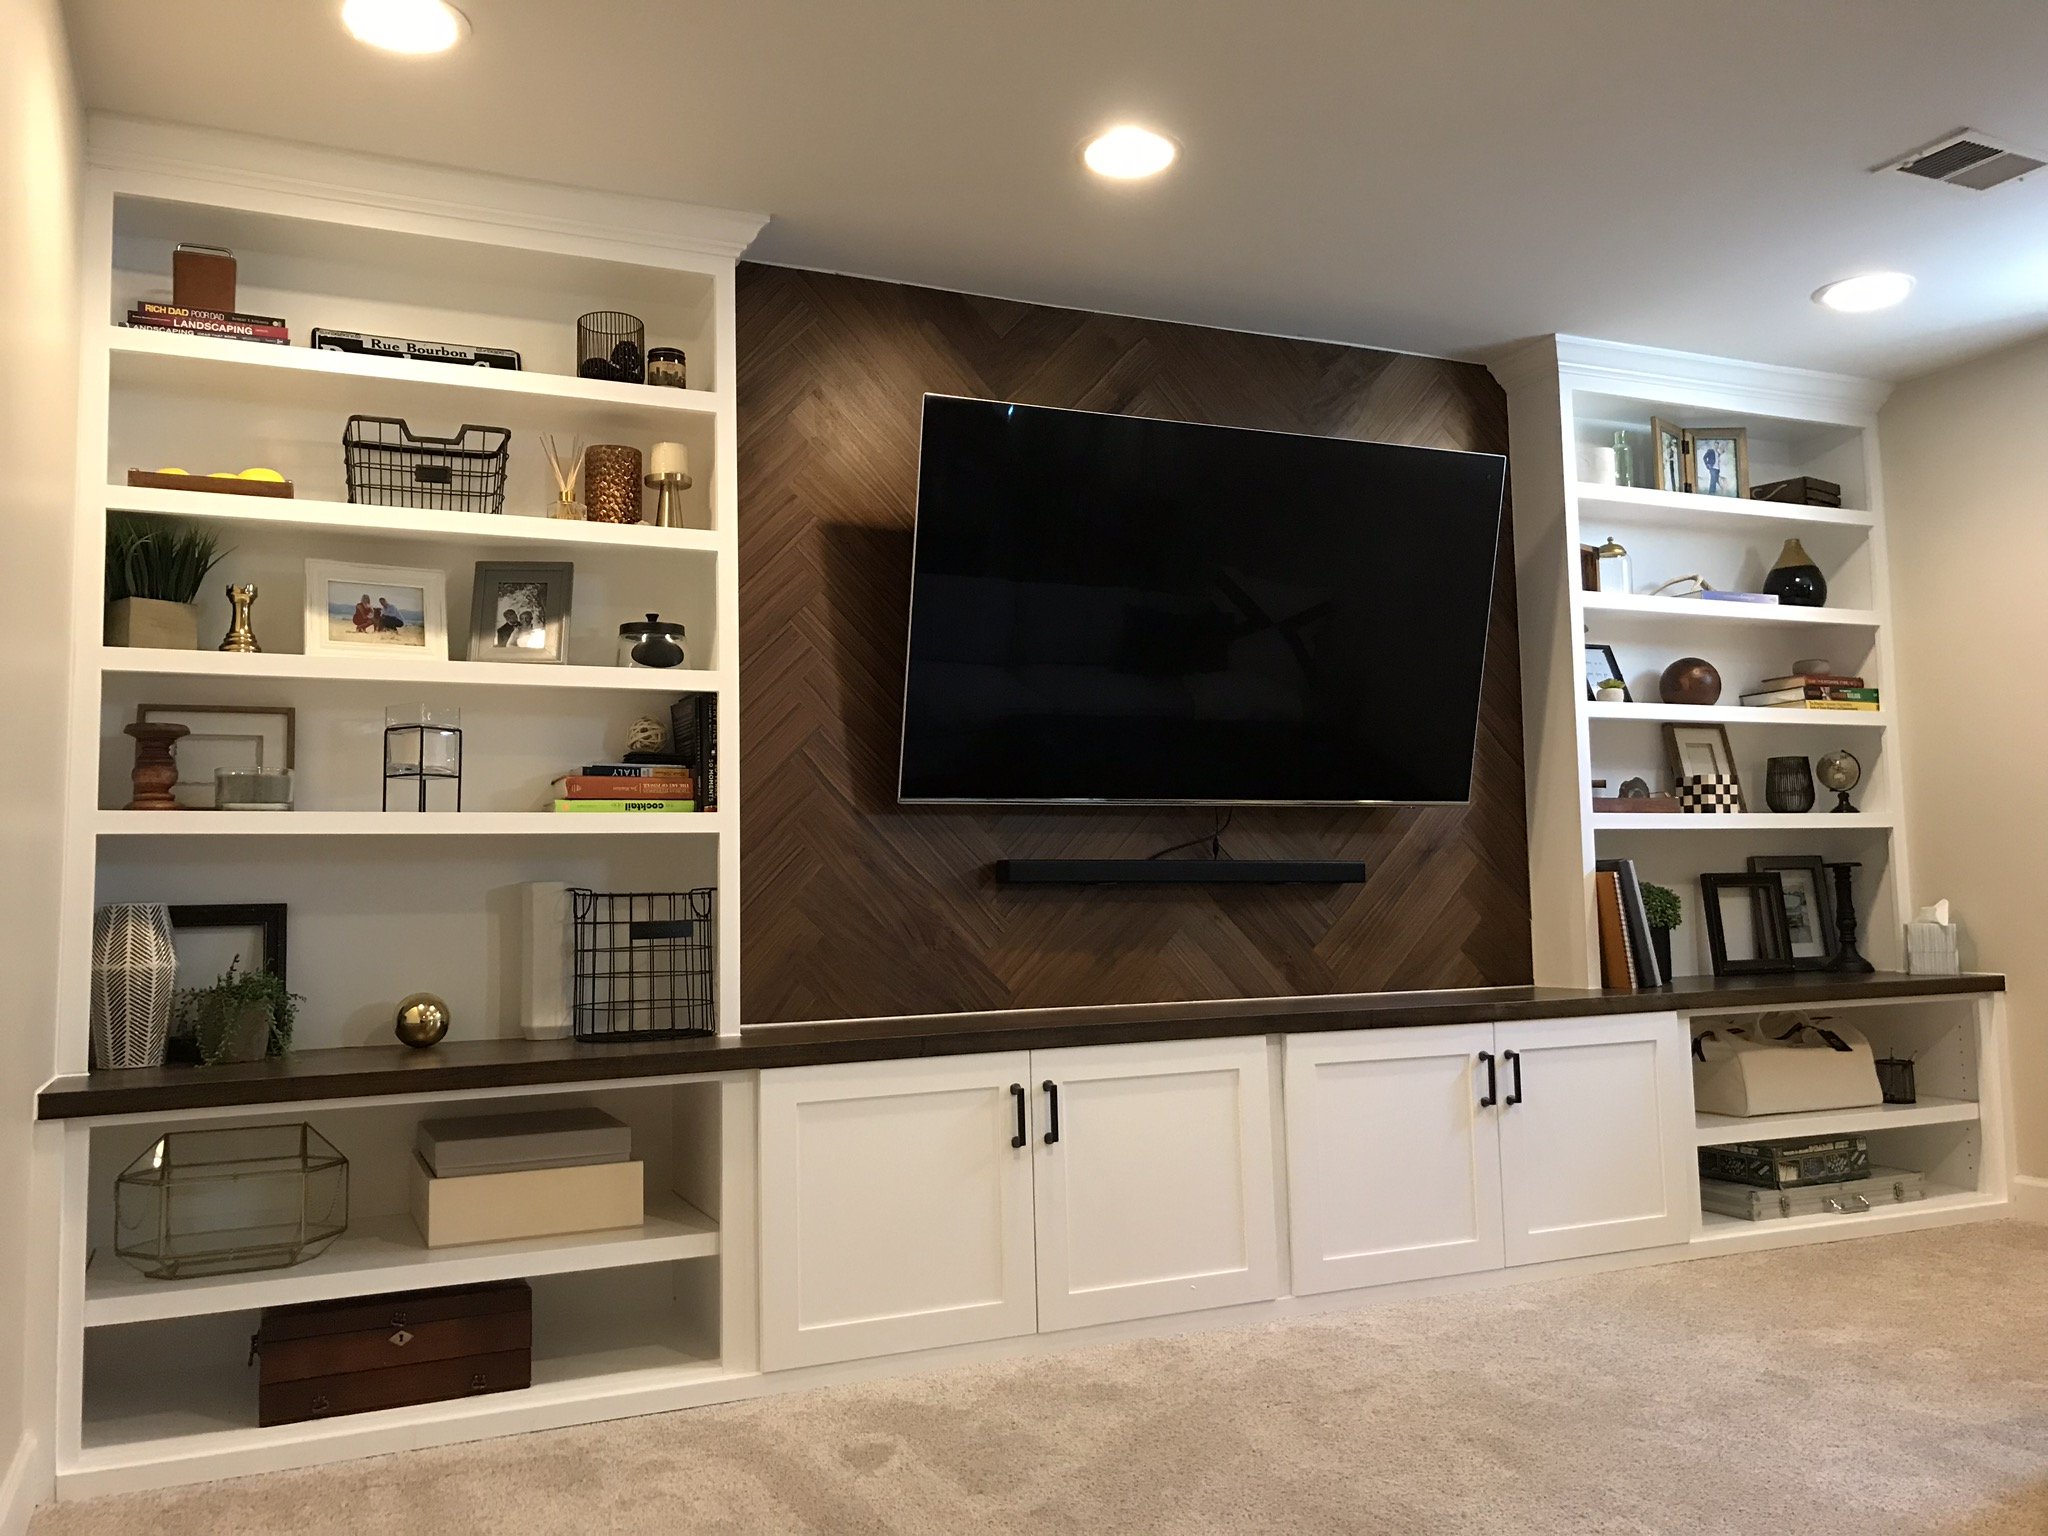 Basement Media Center